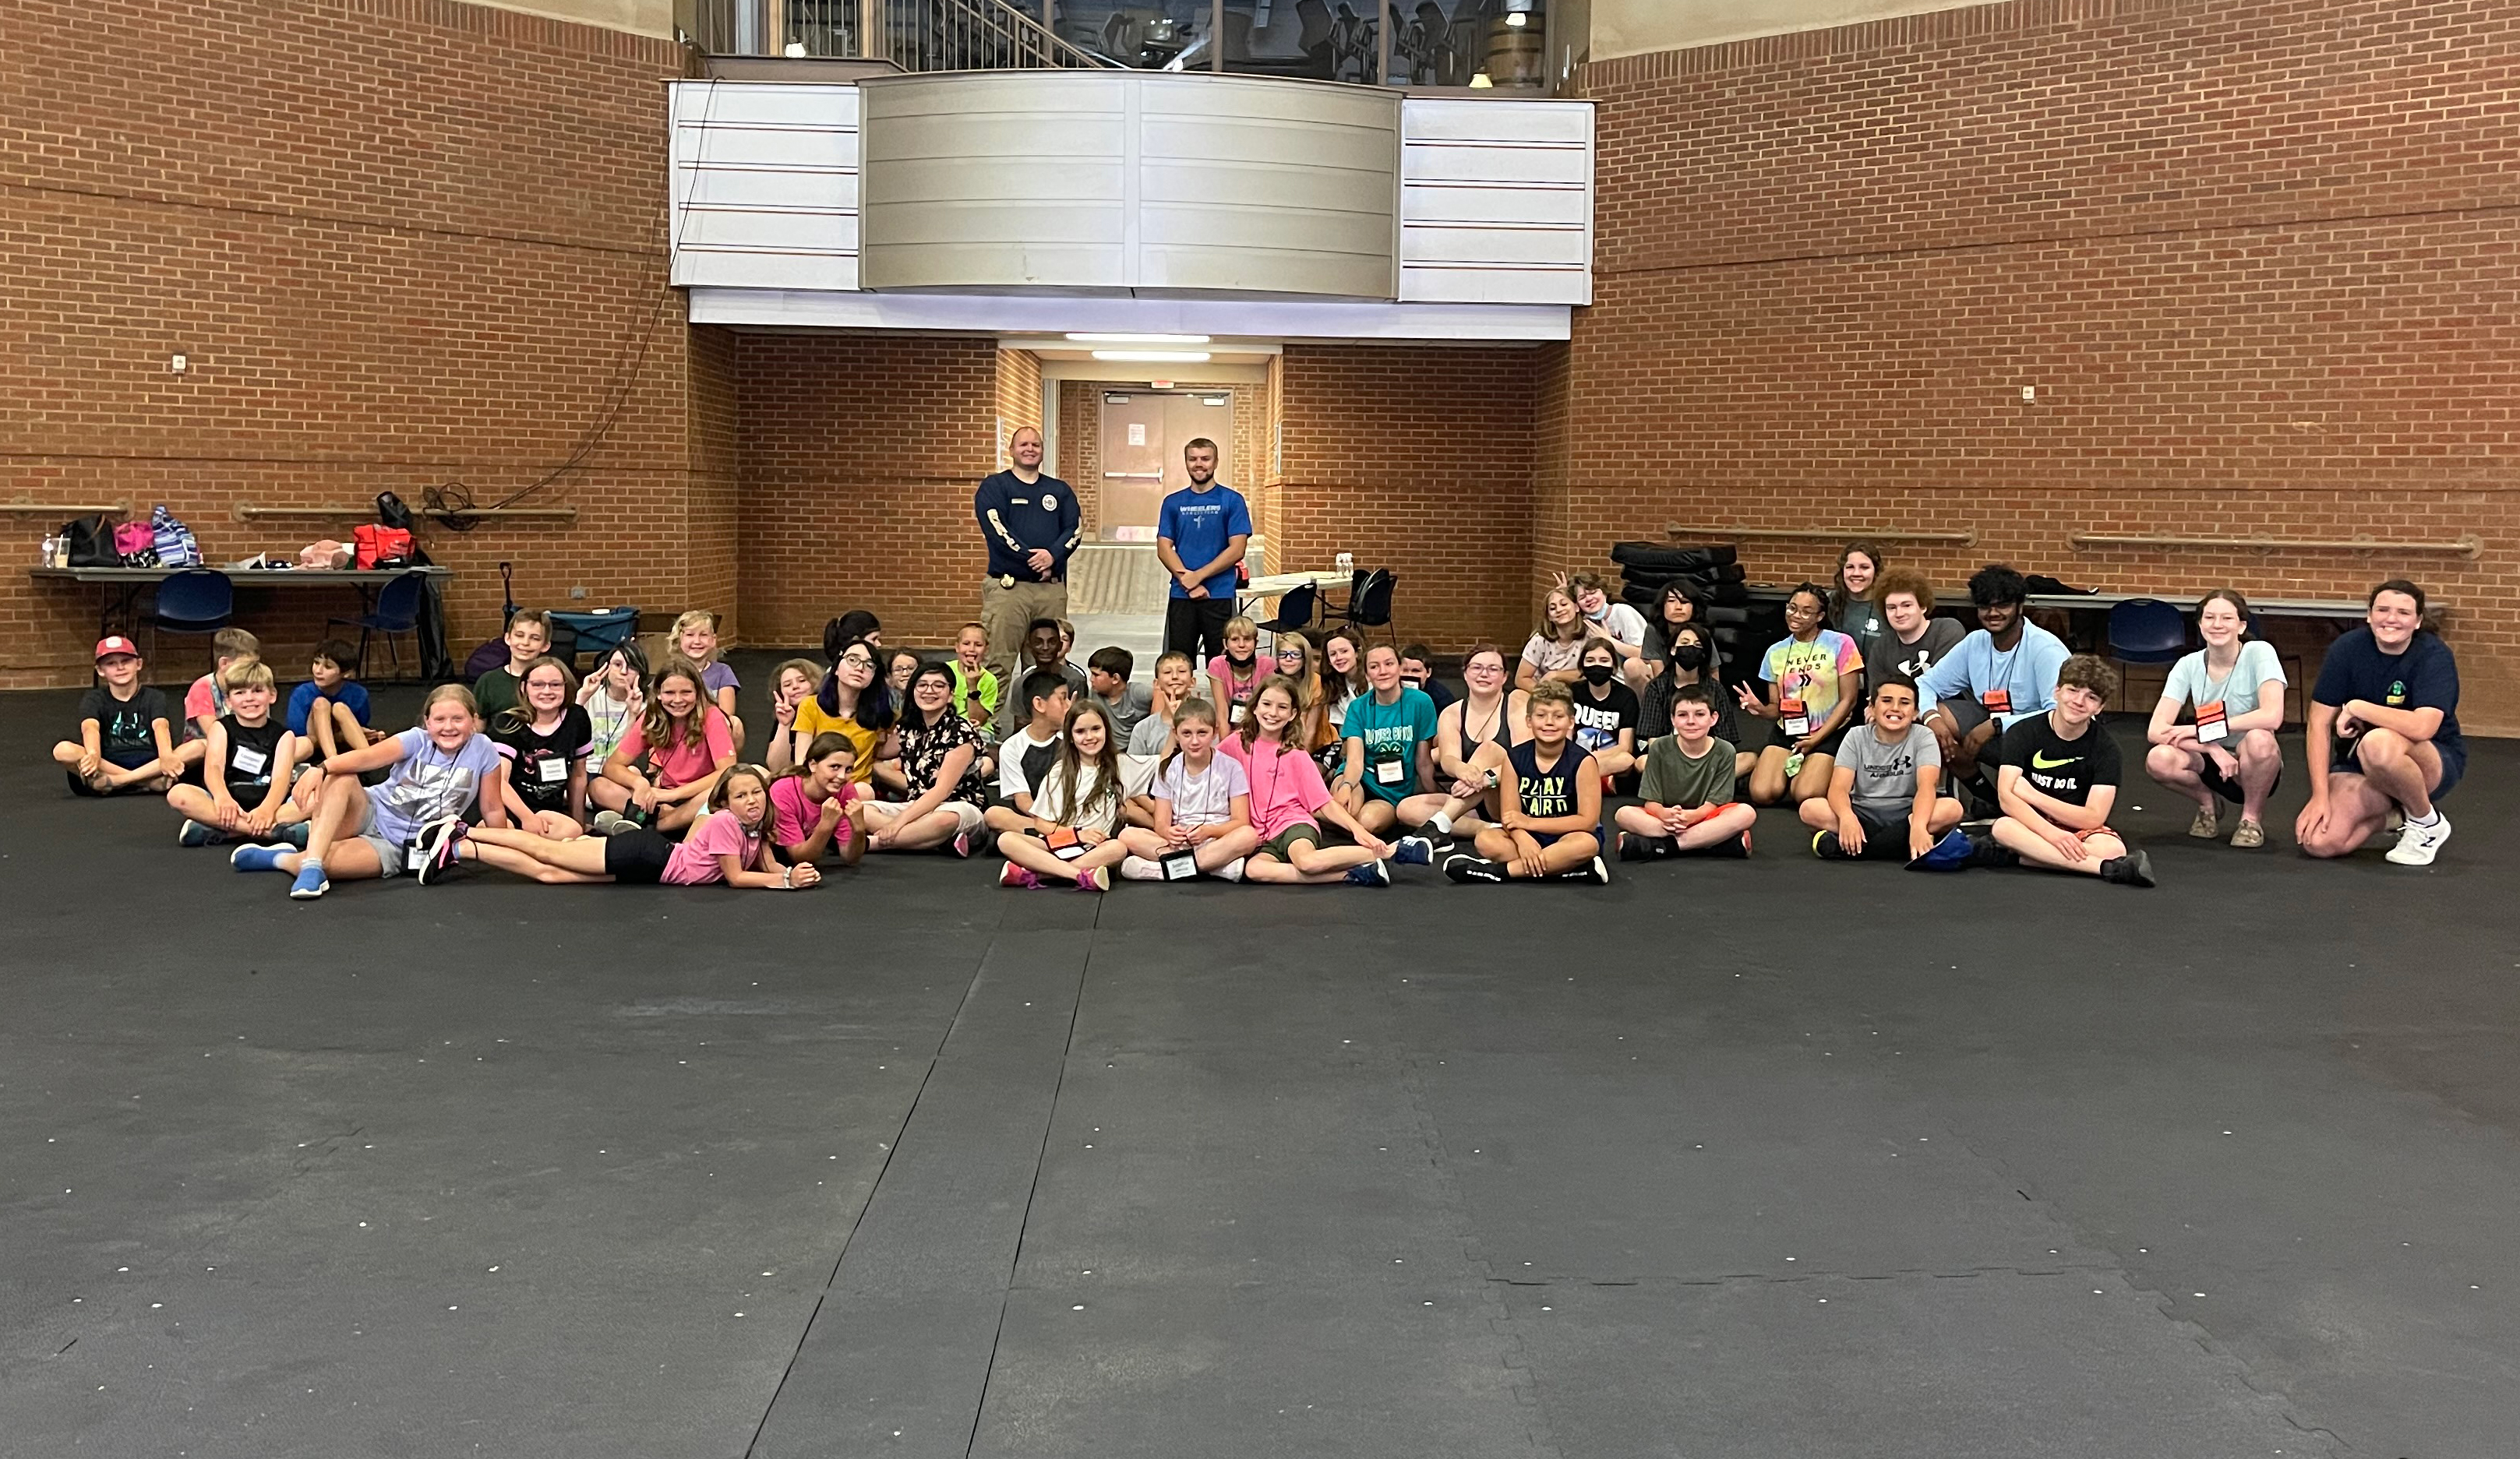 4-H youth with Officer McMahan and Mr. Nokes